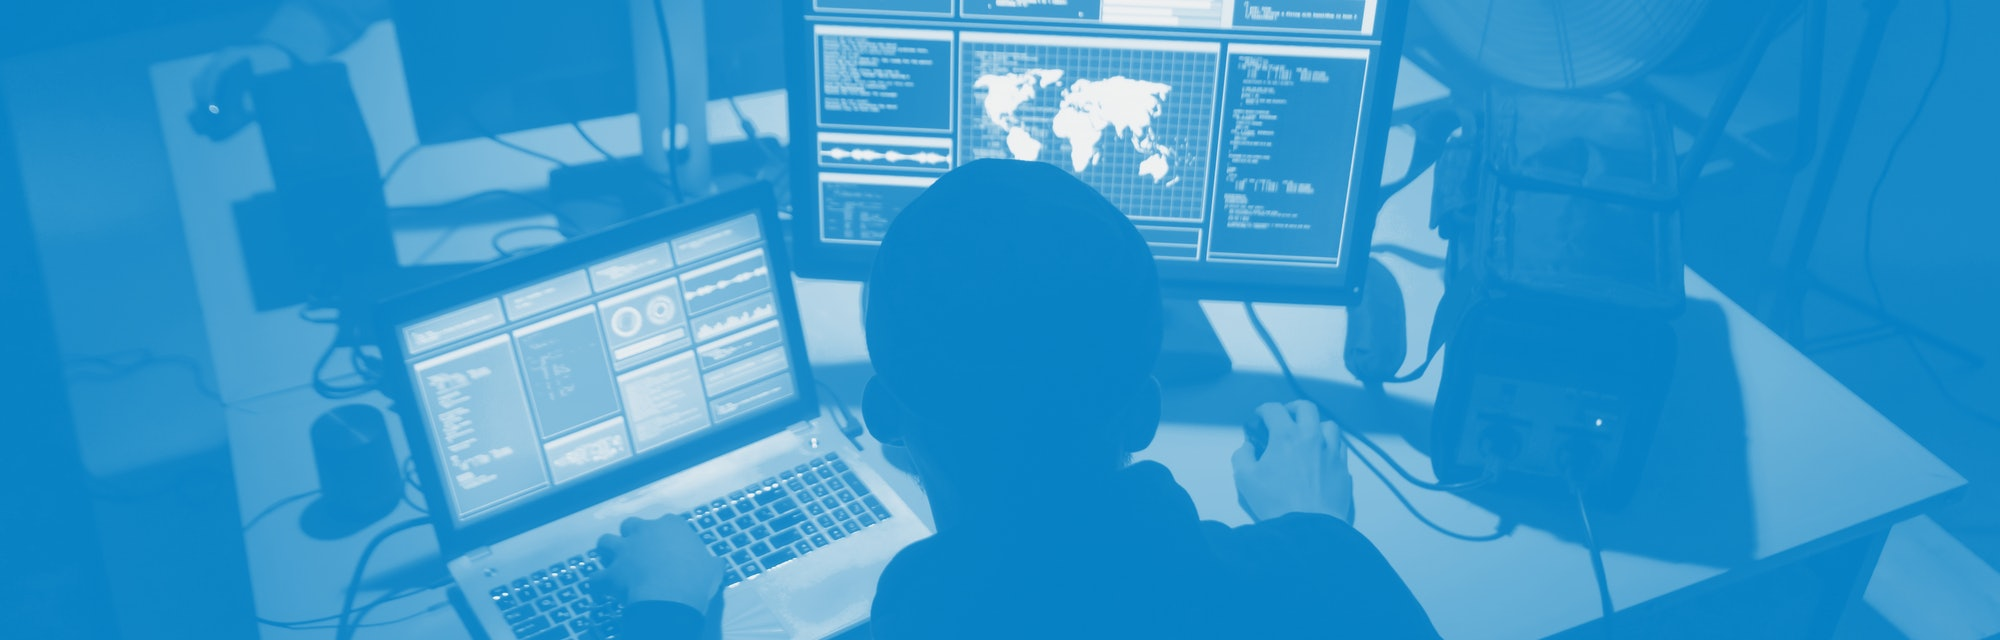 Wanted hackers coding virus ransomware using laptops and computers. Cyber attack, system breaking an...